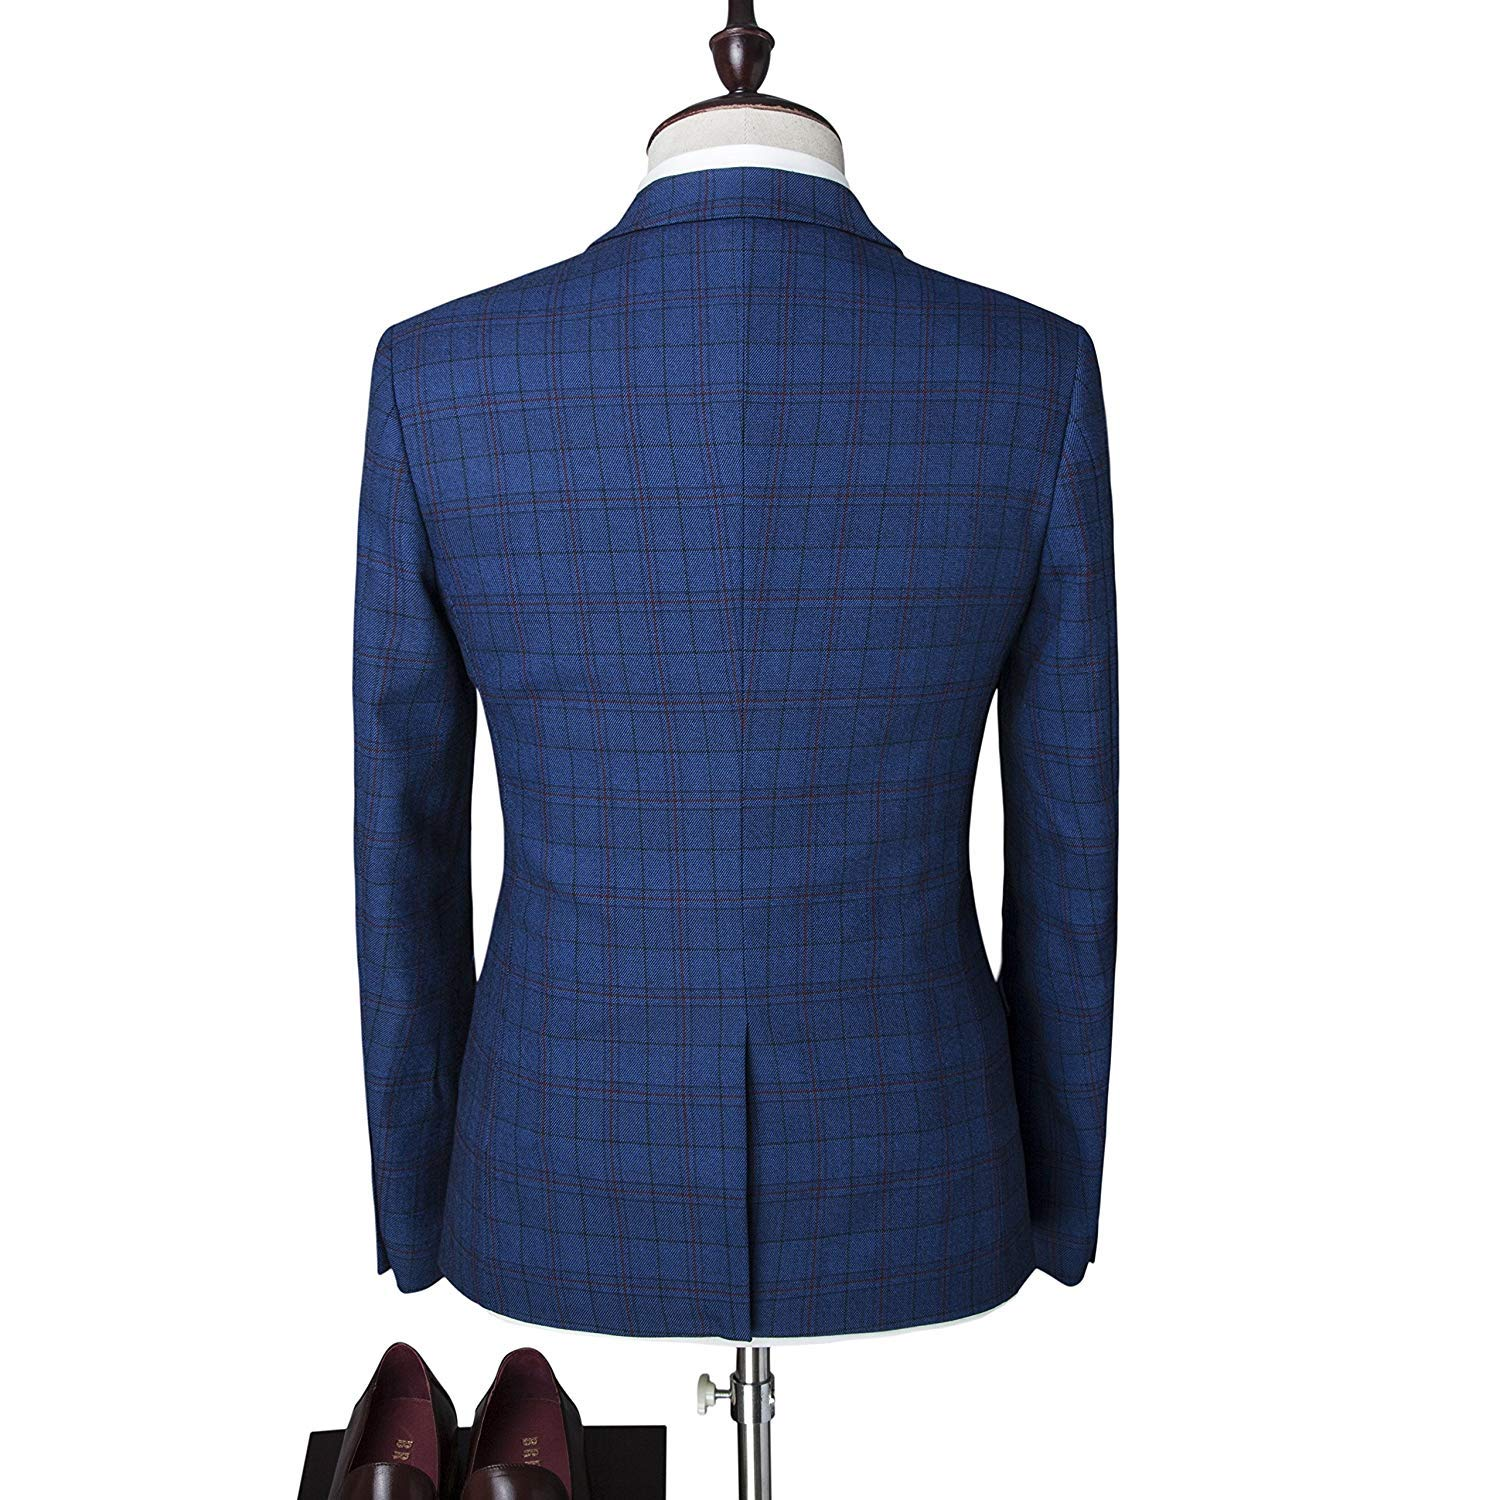 Mens One Button Designer Luxurious Suits Plaid Tuxedos 3 Piece Set Tailored Jacket With Twin Buttons At Amazon Clothing Store